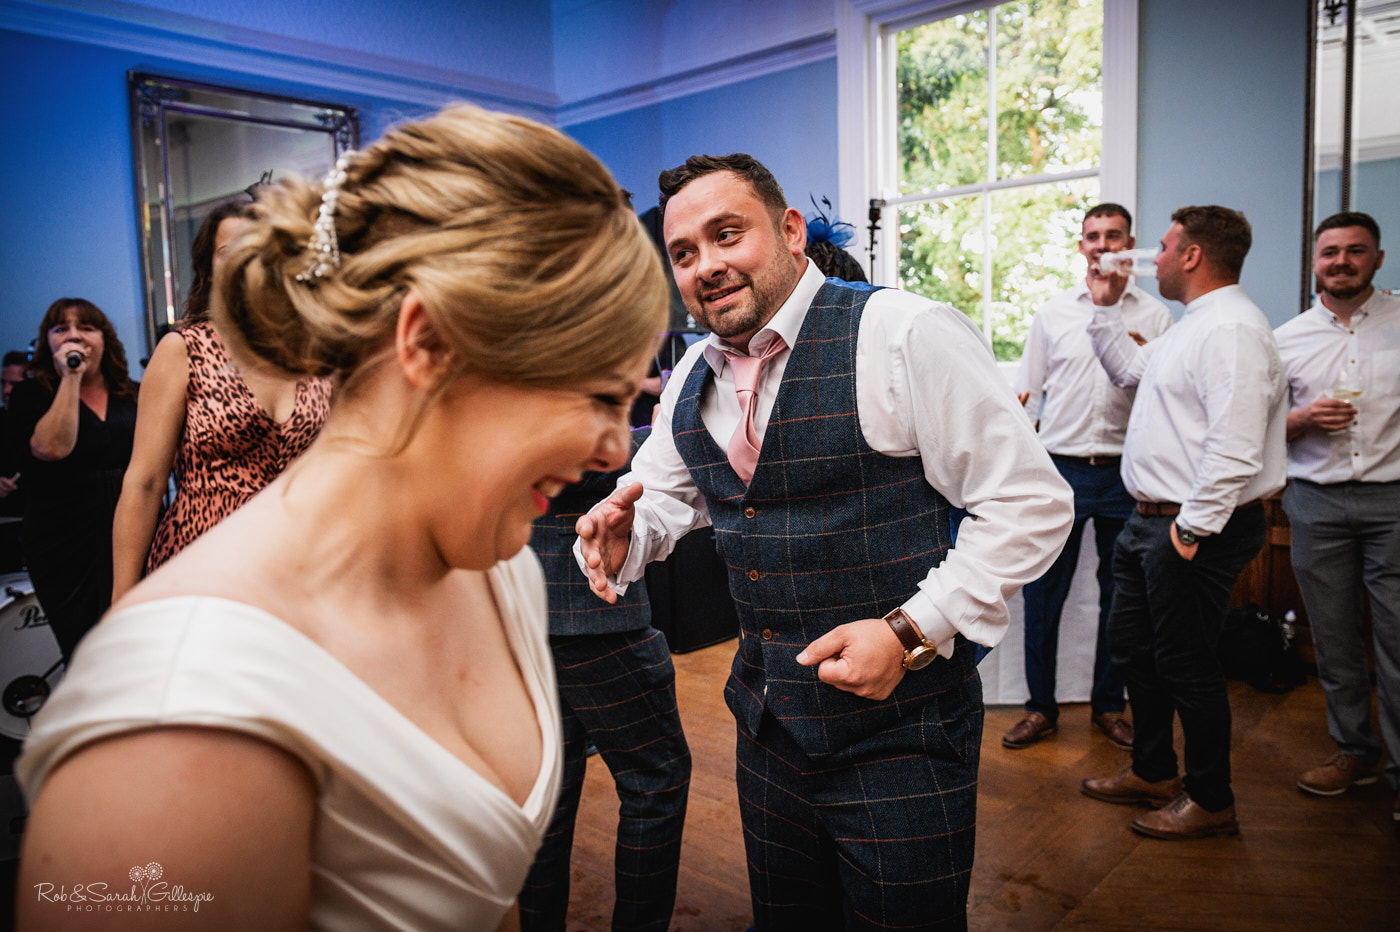 Wedding dancing at Pendrell Hall